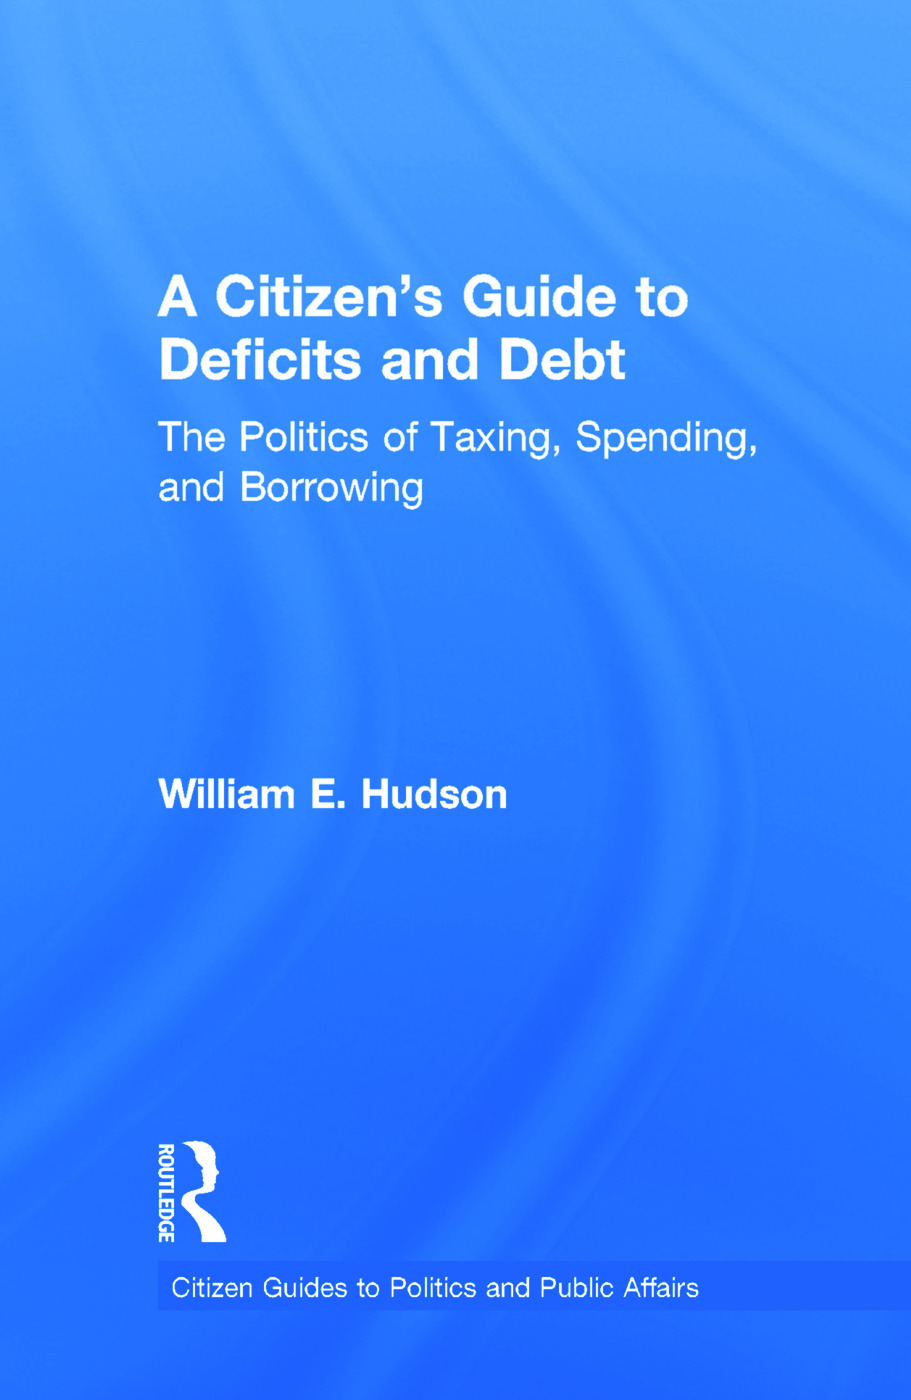 A Citizen's Guide to Deficits and Debt: The Politics of Taxing, Spending, and Borrowing book cover